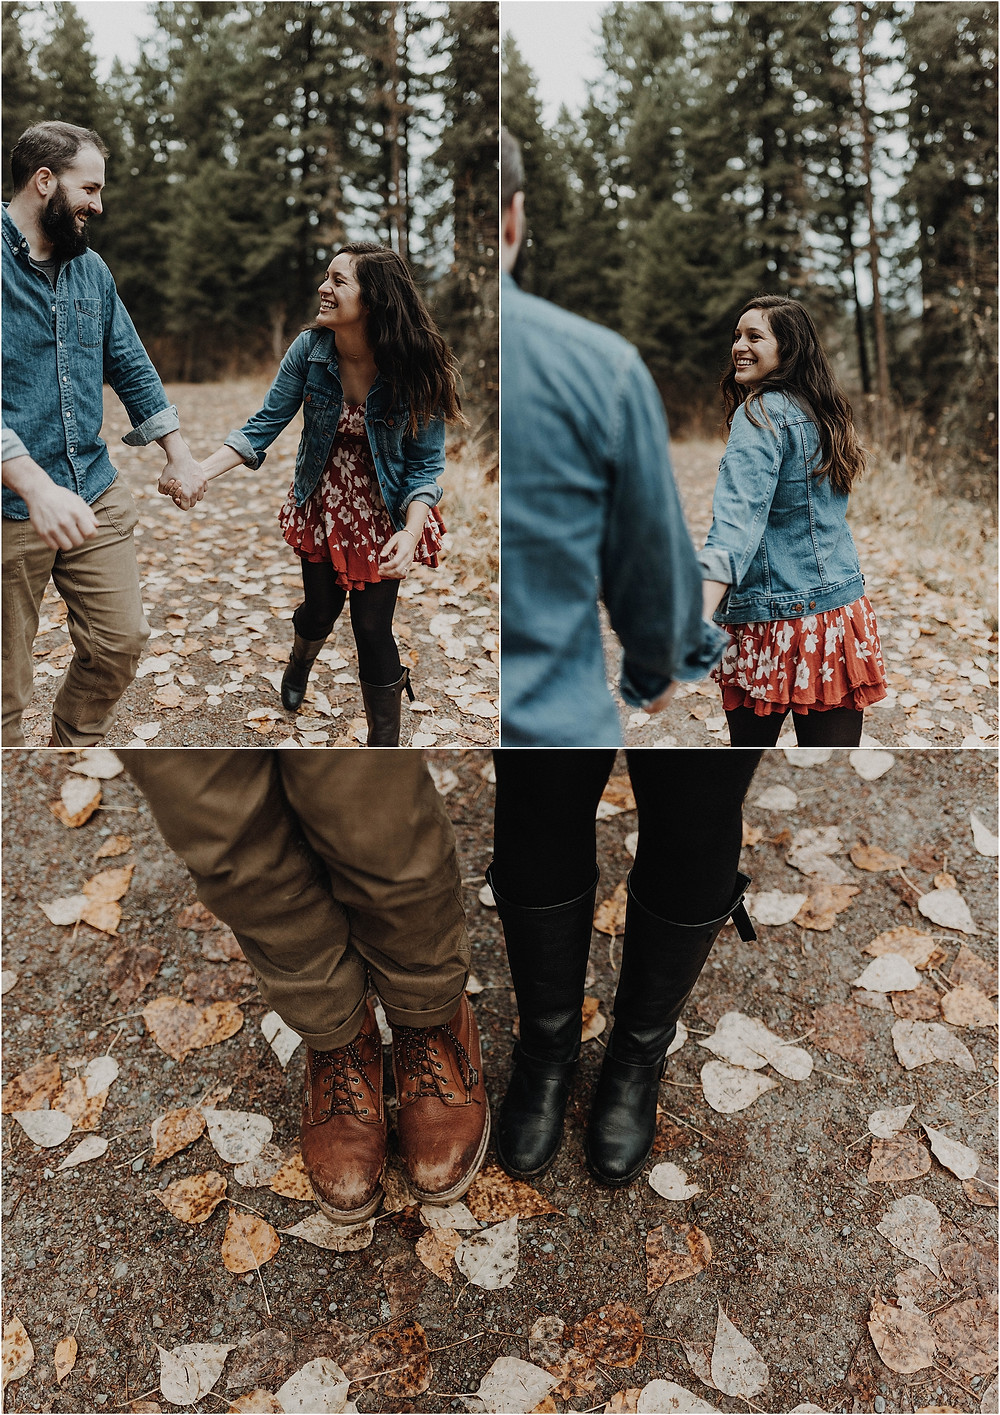 Engagement photos in the woods, fall engagement, mountain photo shoot, sunset photos, Bohemian engagements, What to wear for engagement shoot, moody, Montana photographer, Missoula Engagement